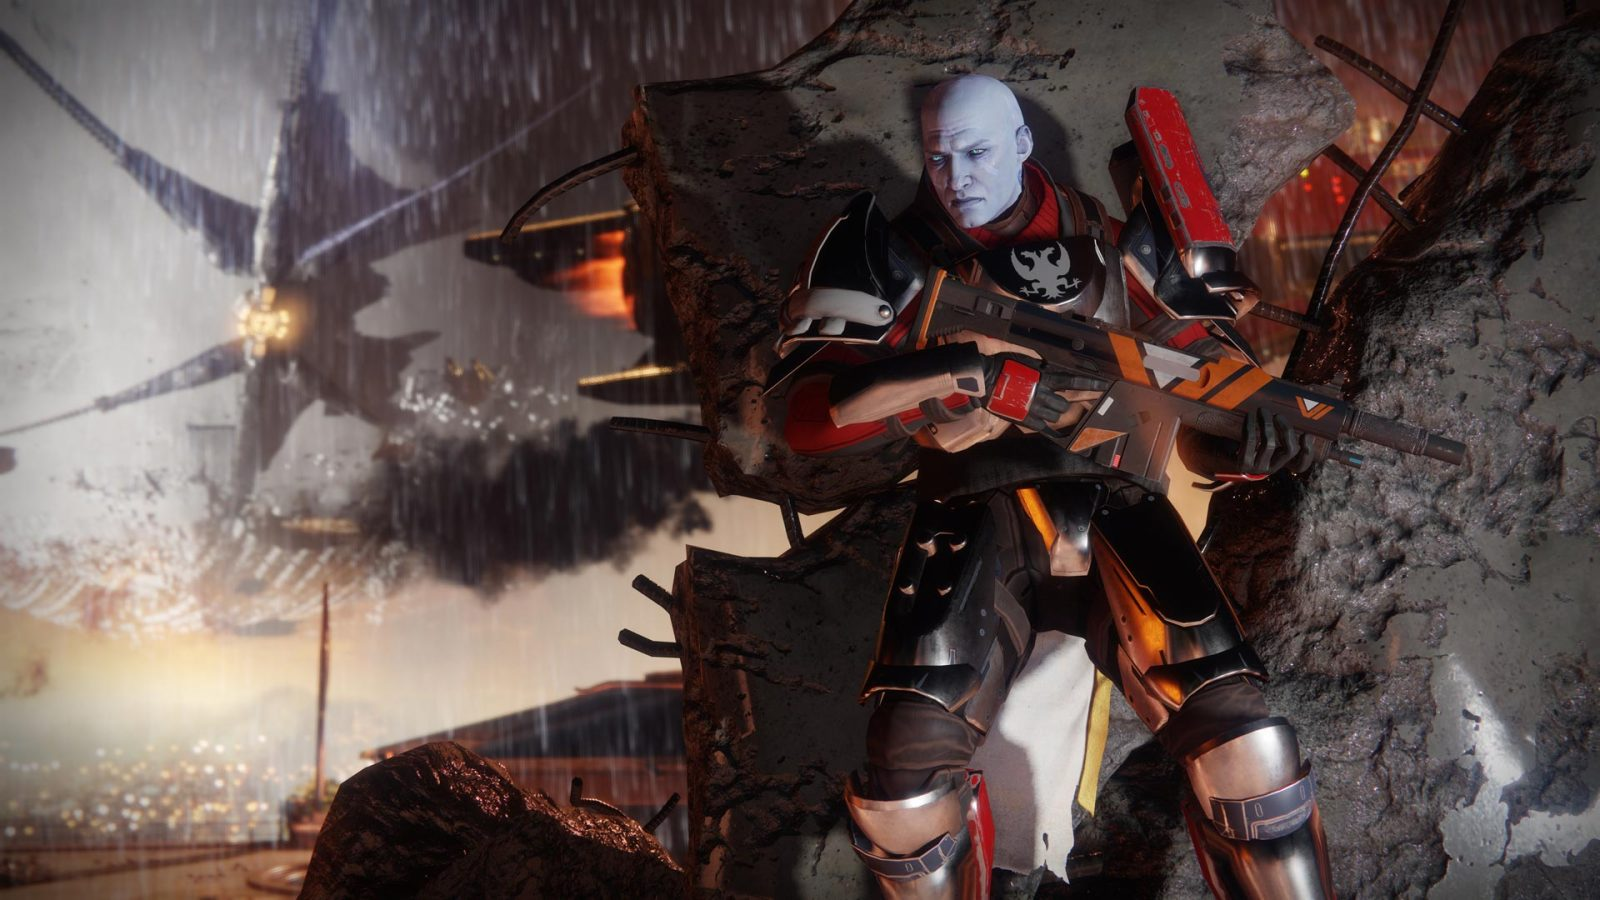 Todays Best Game Deals Destiny 2 From 16 Mega Man Legacy 11 Dishonored Death Of The Outsider Reg Ps4 More